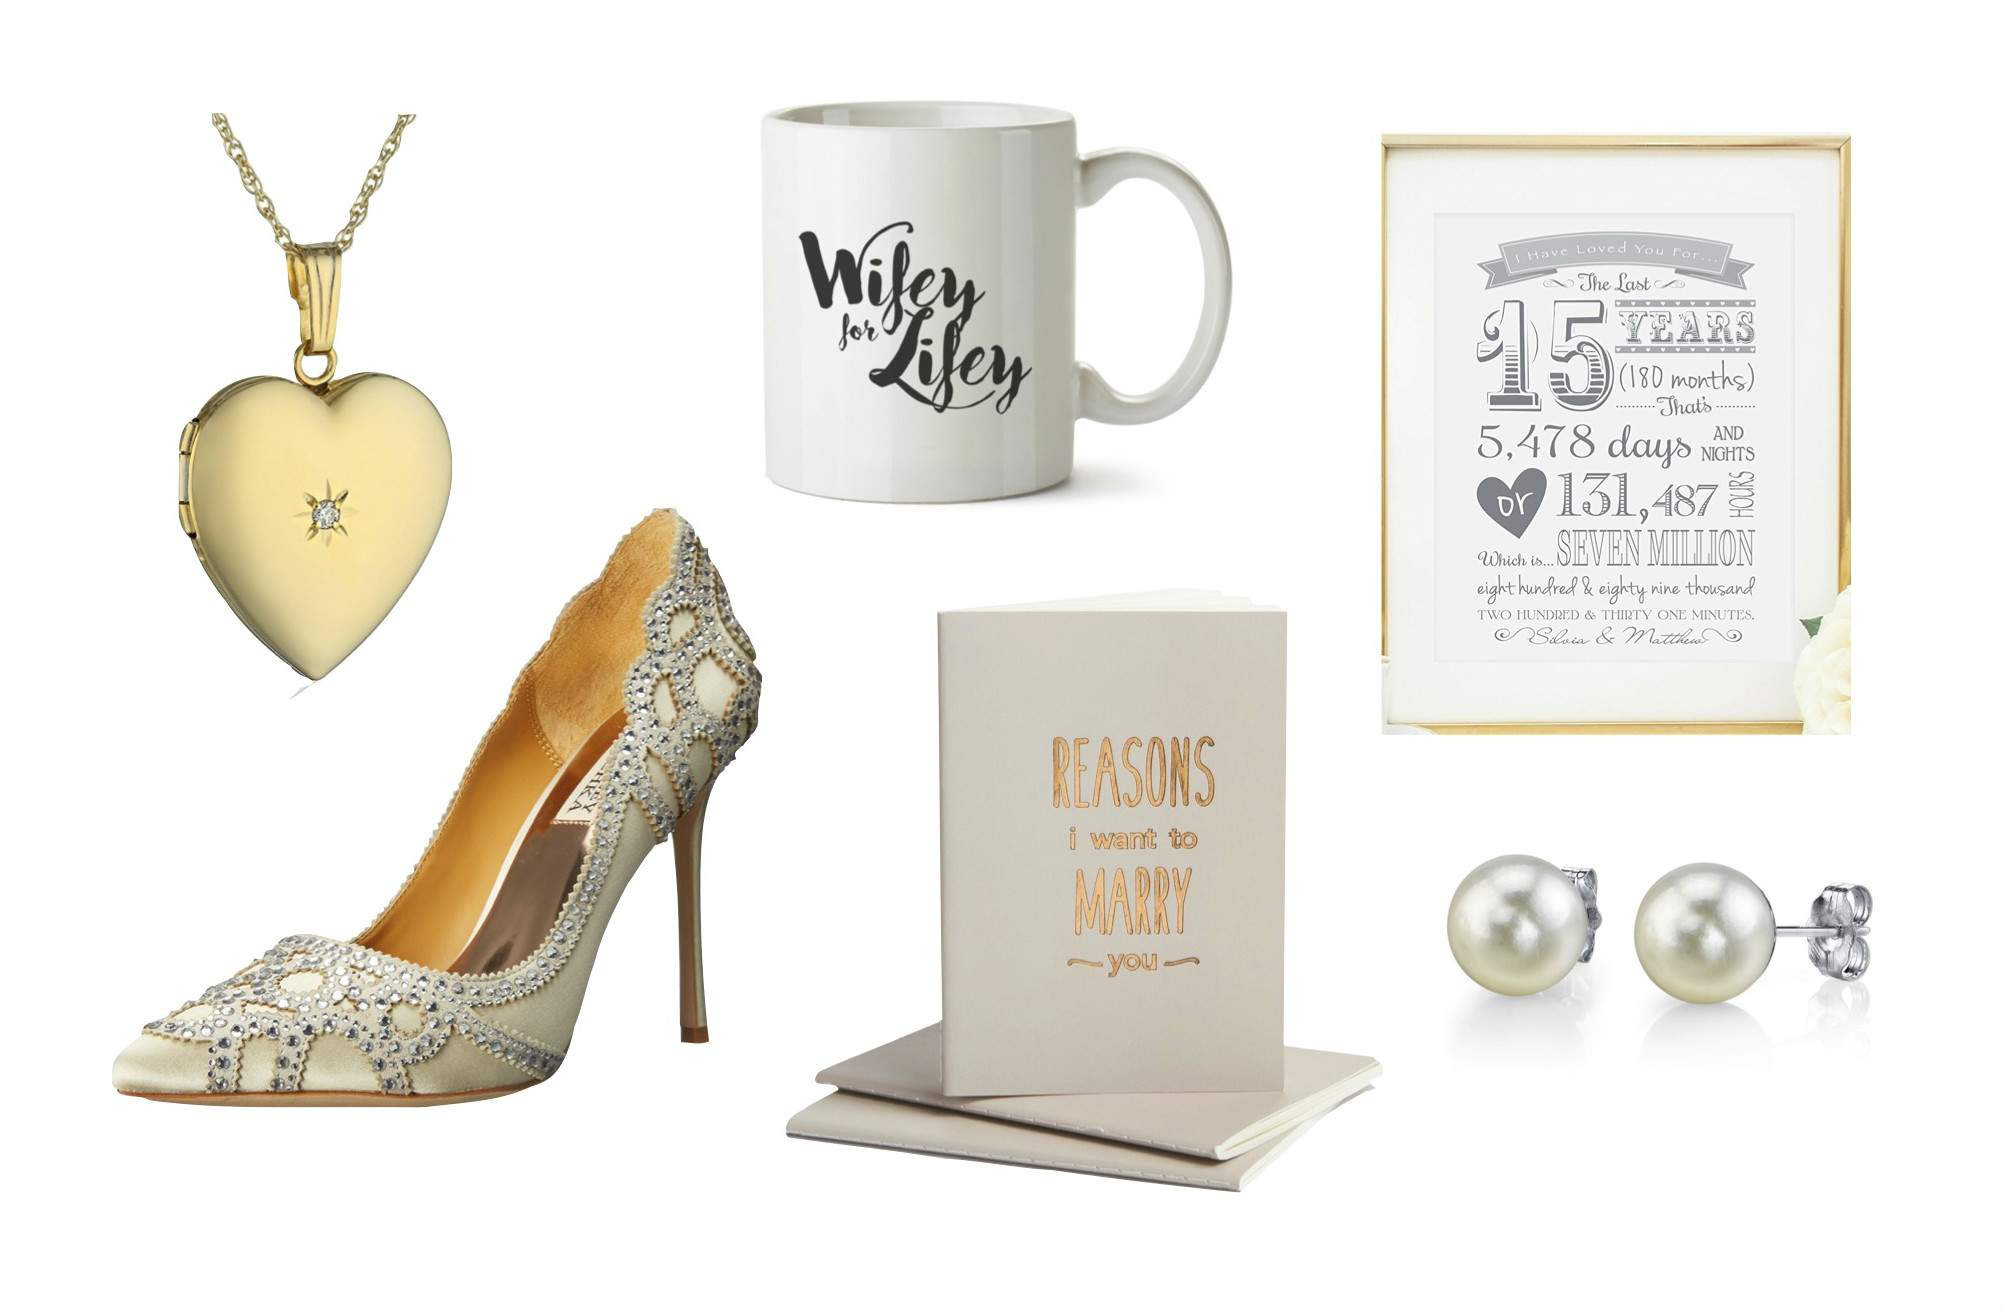 Best ideas about Wedding Gift Ideas From Groom To Bride . Save or Pin Best Wedding Day Gift Ideas From the Groom to the Bride Now.